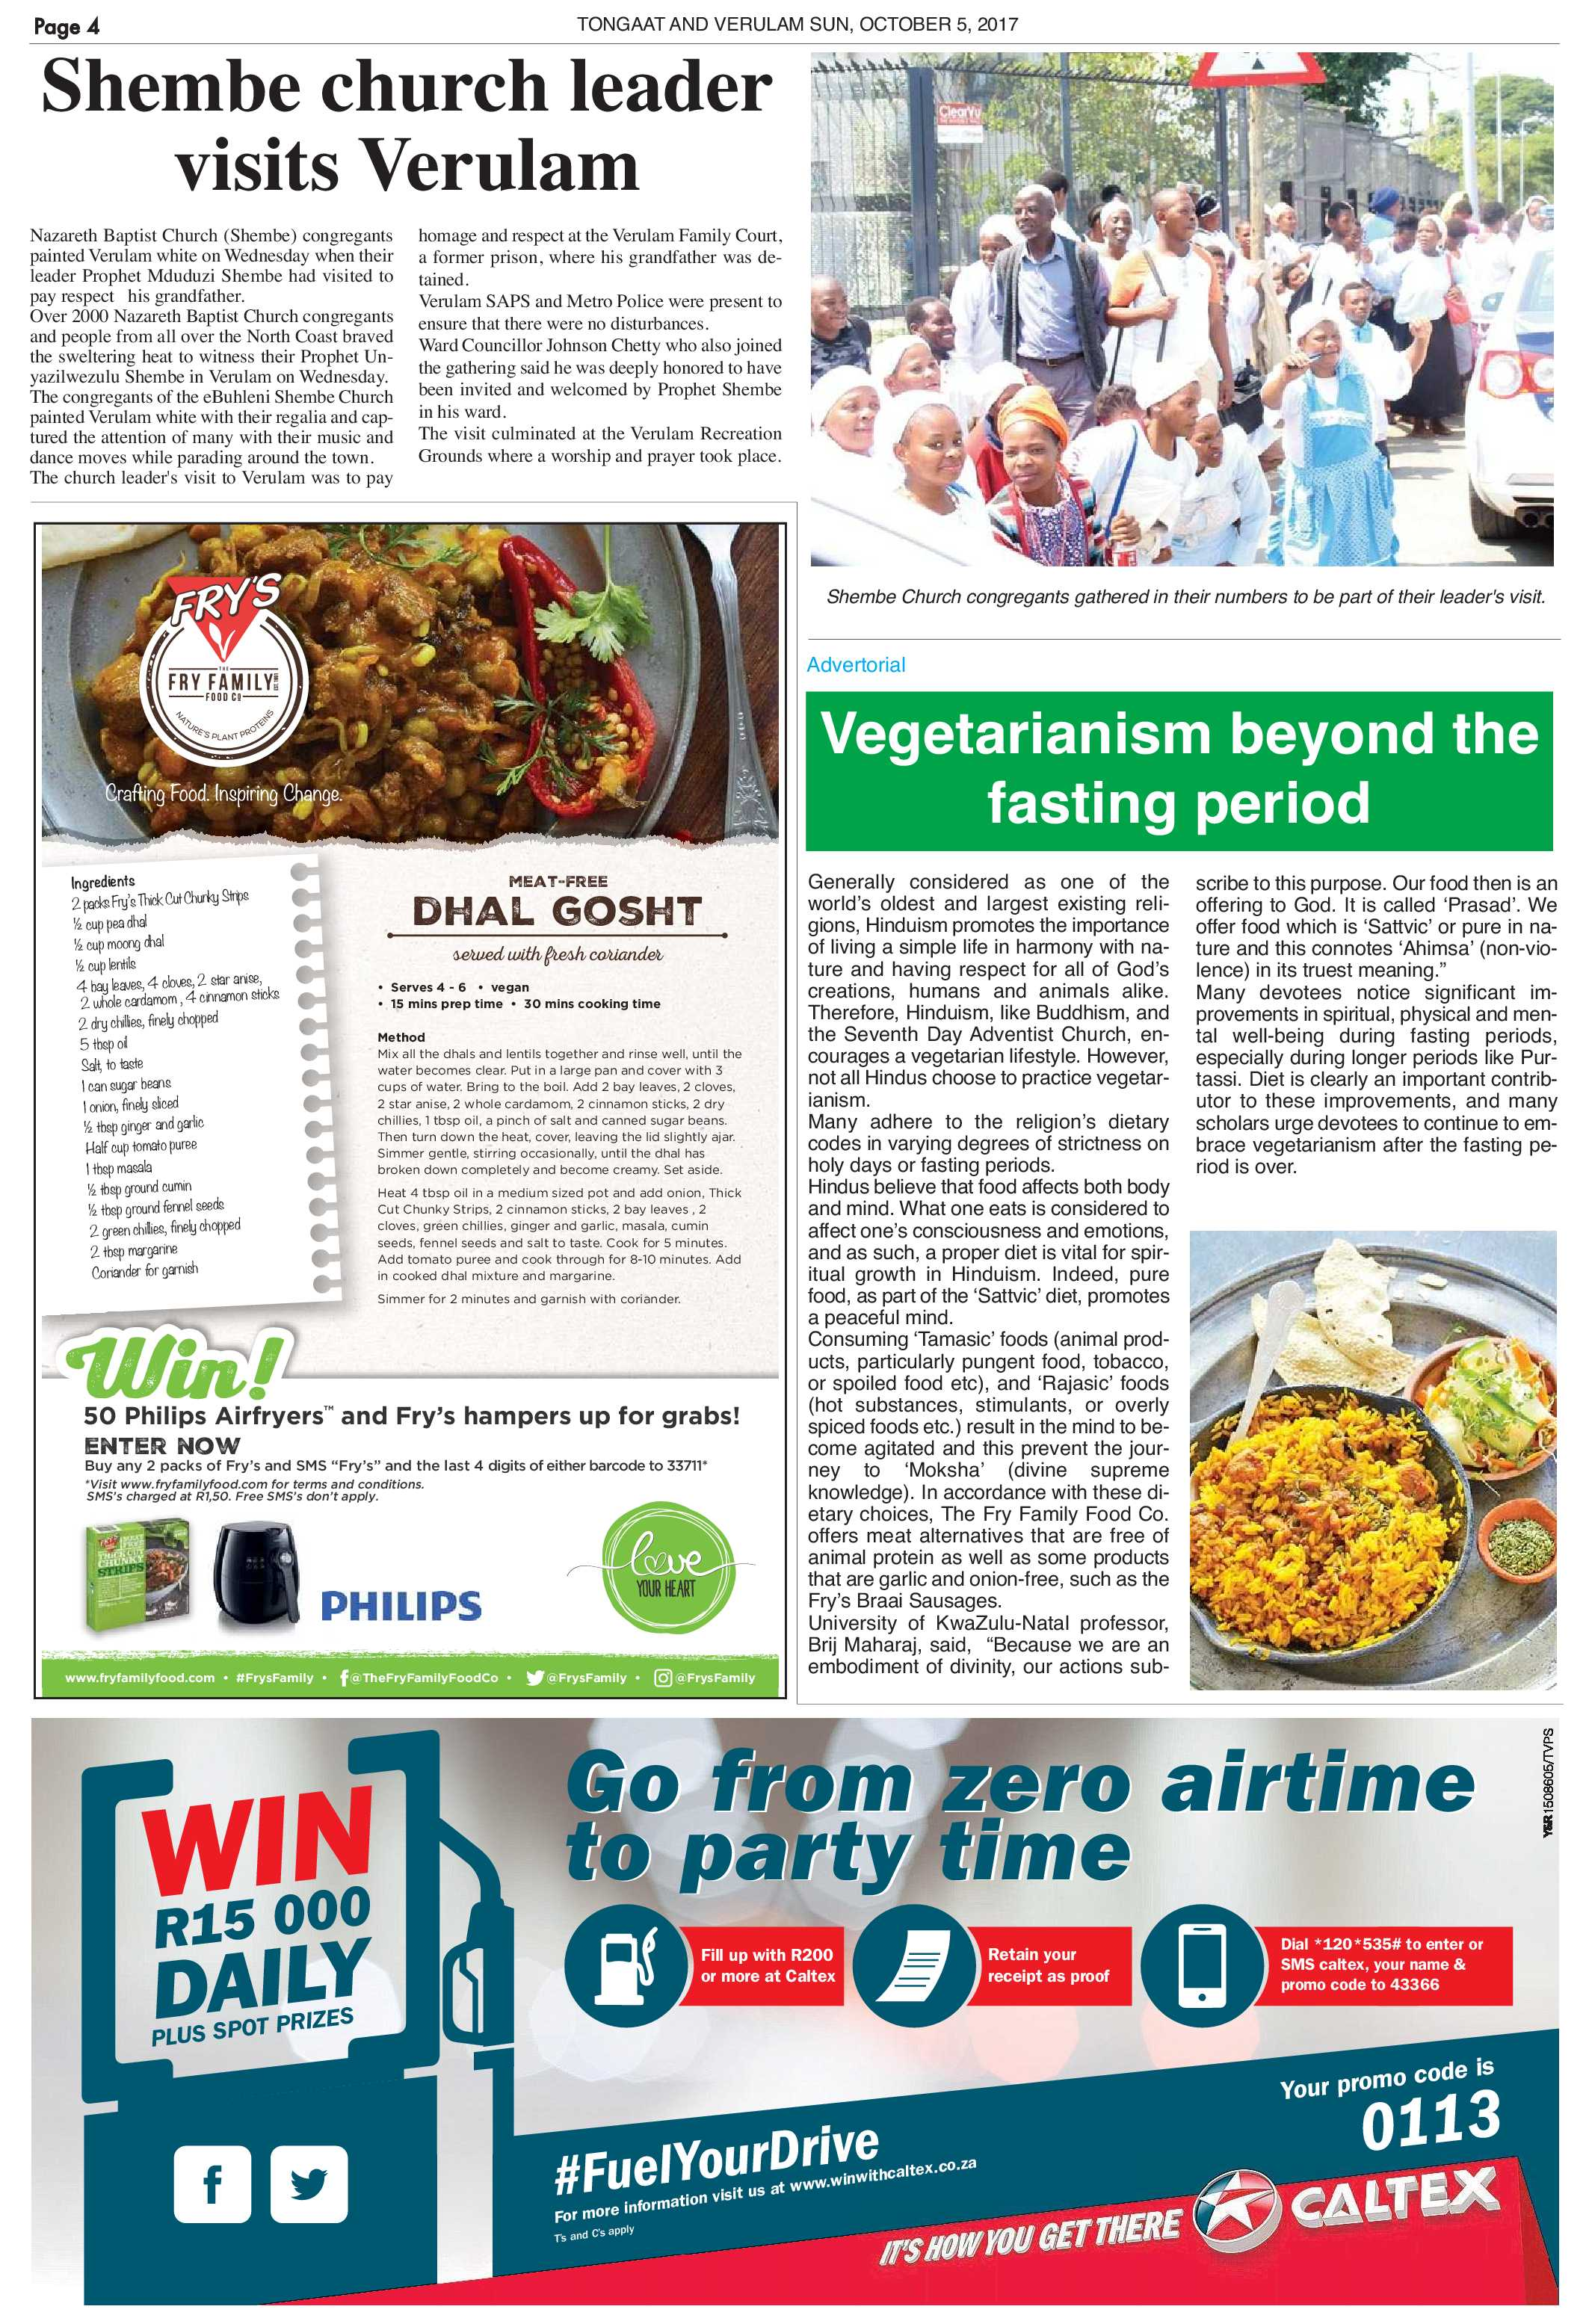 tongaat-verulam-sun-october-5-epapers-page-4